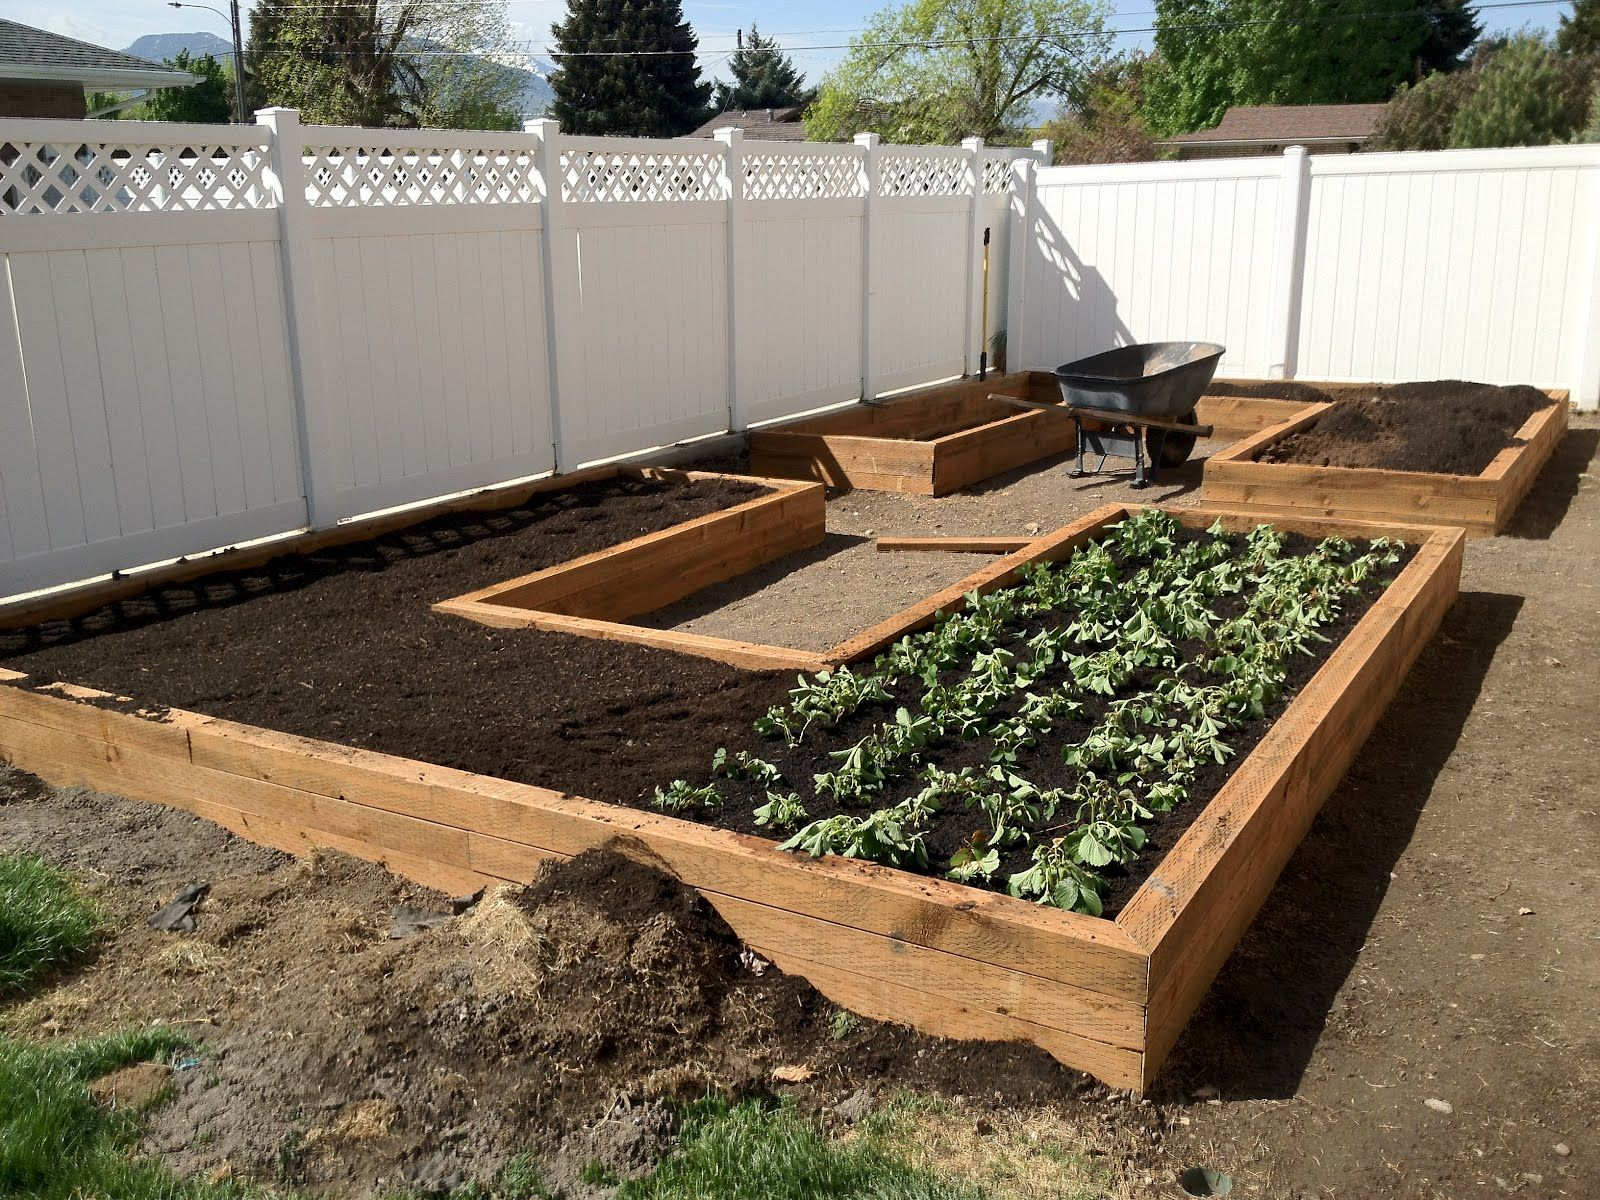 How to build Garden Boxes Step By Step Instructions The Recipe